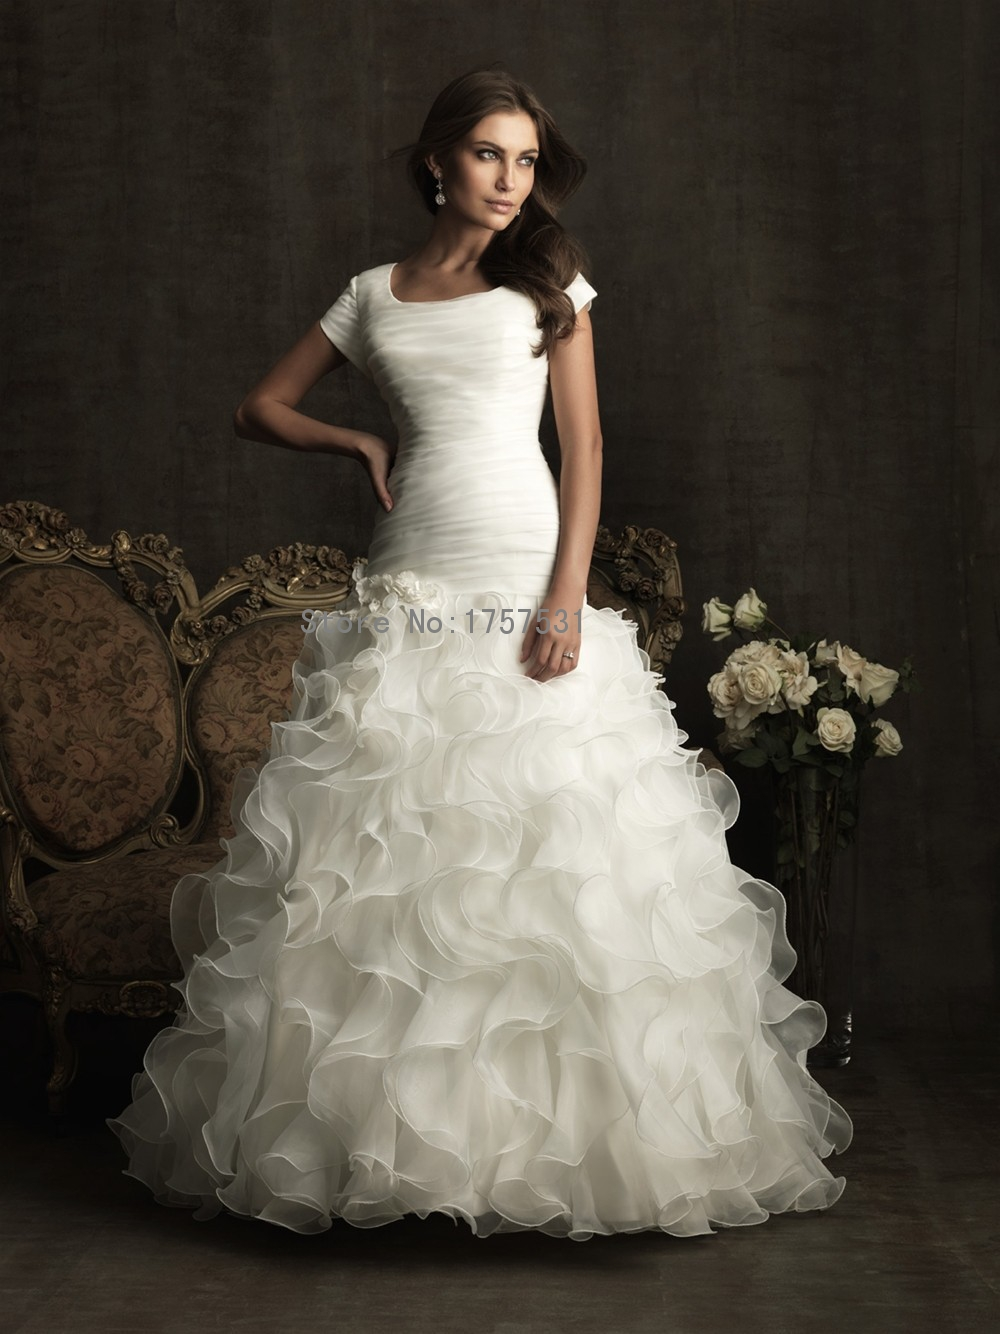 Ball Gown Wedding Dresses With Short Sleeves : Aliexpress buy new simple elegant wedding ball